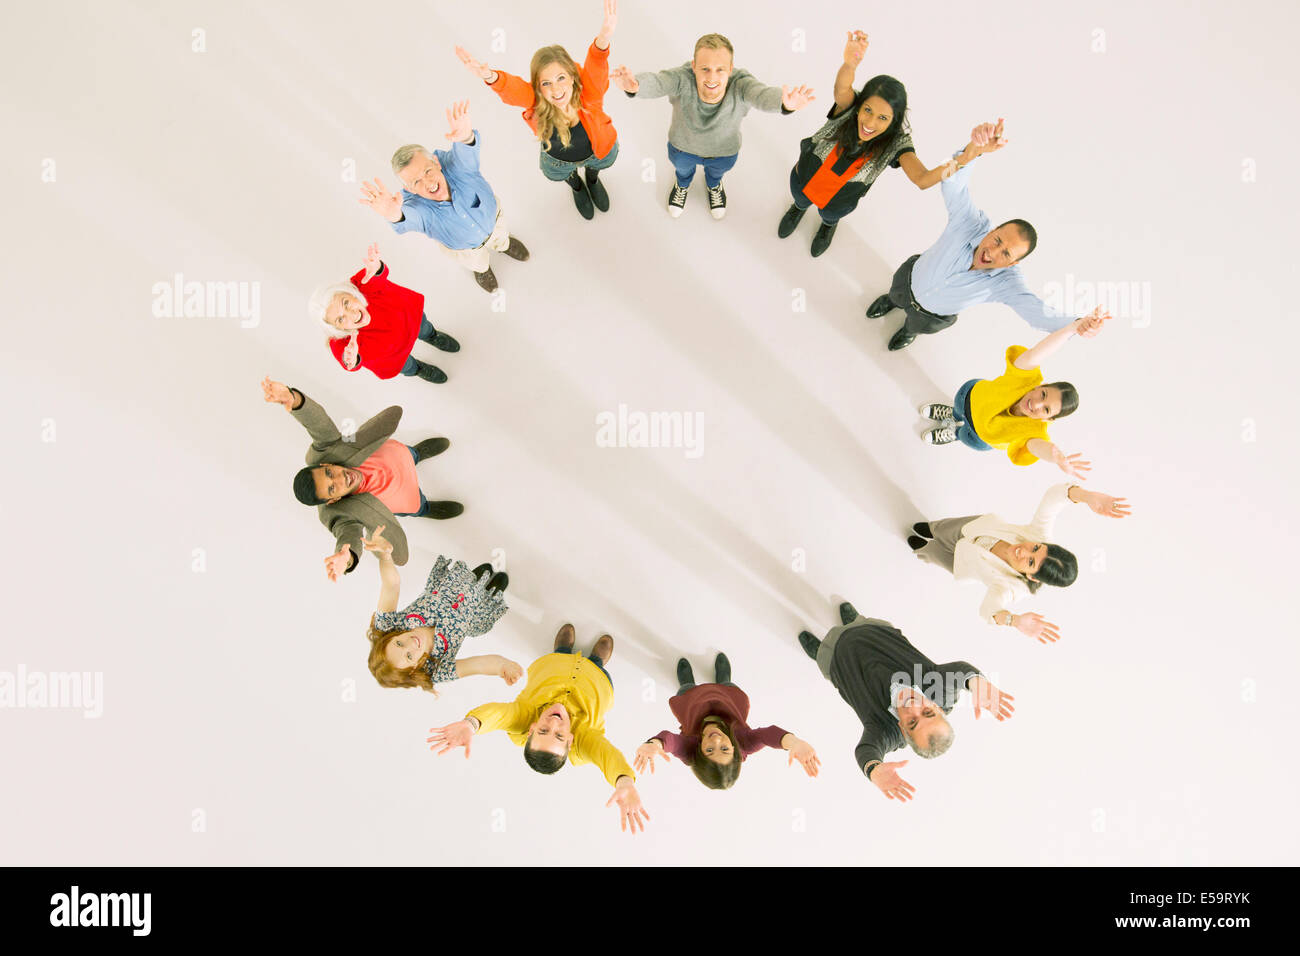 Business people with arms raised in circle - Stock Image